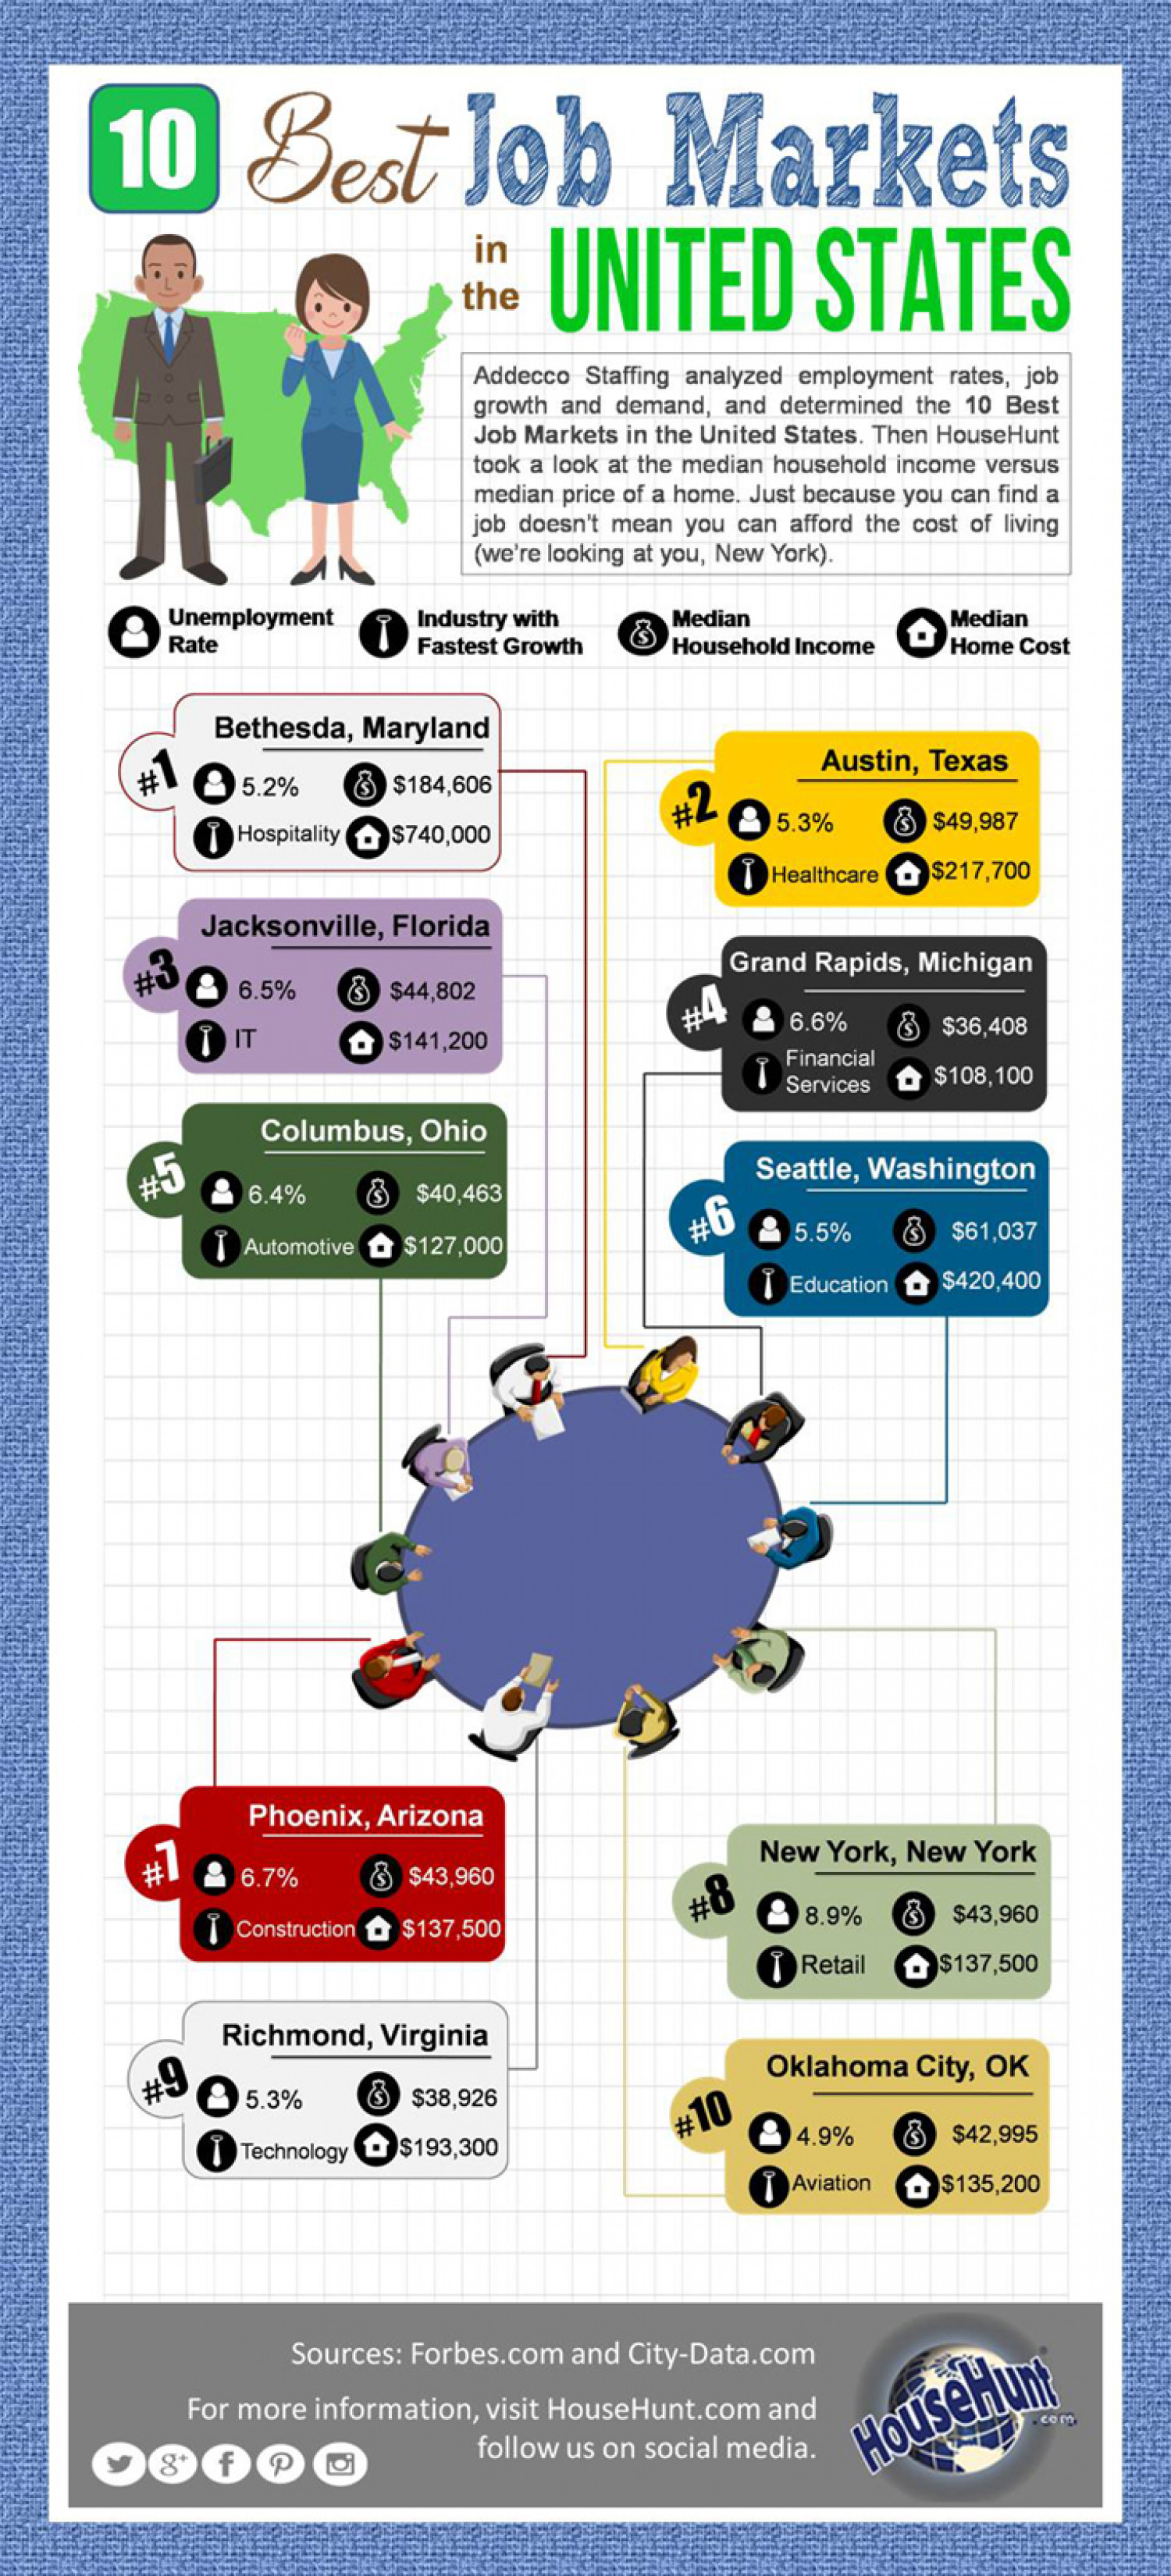 10 Best Job Markets in the US Infographic